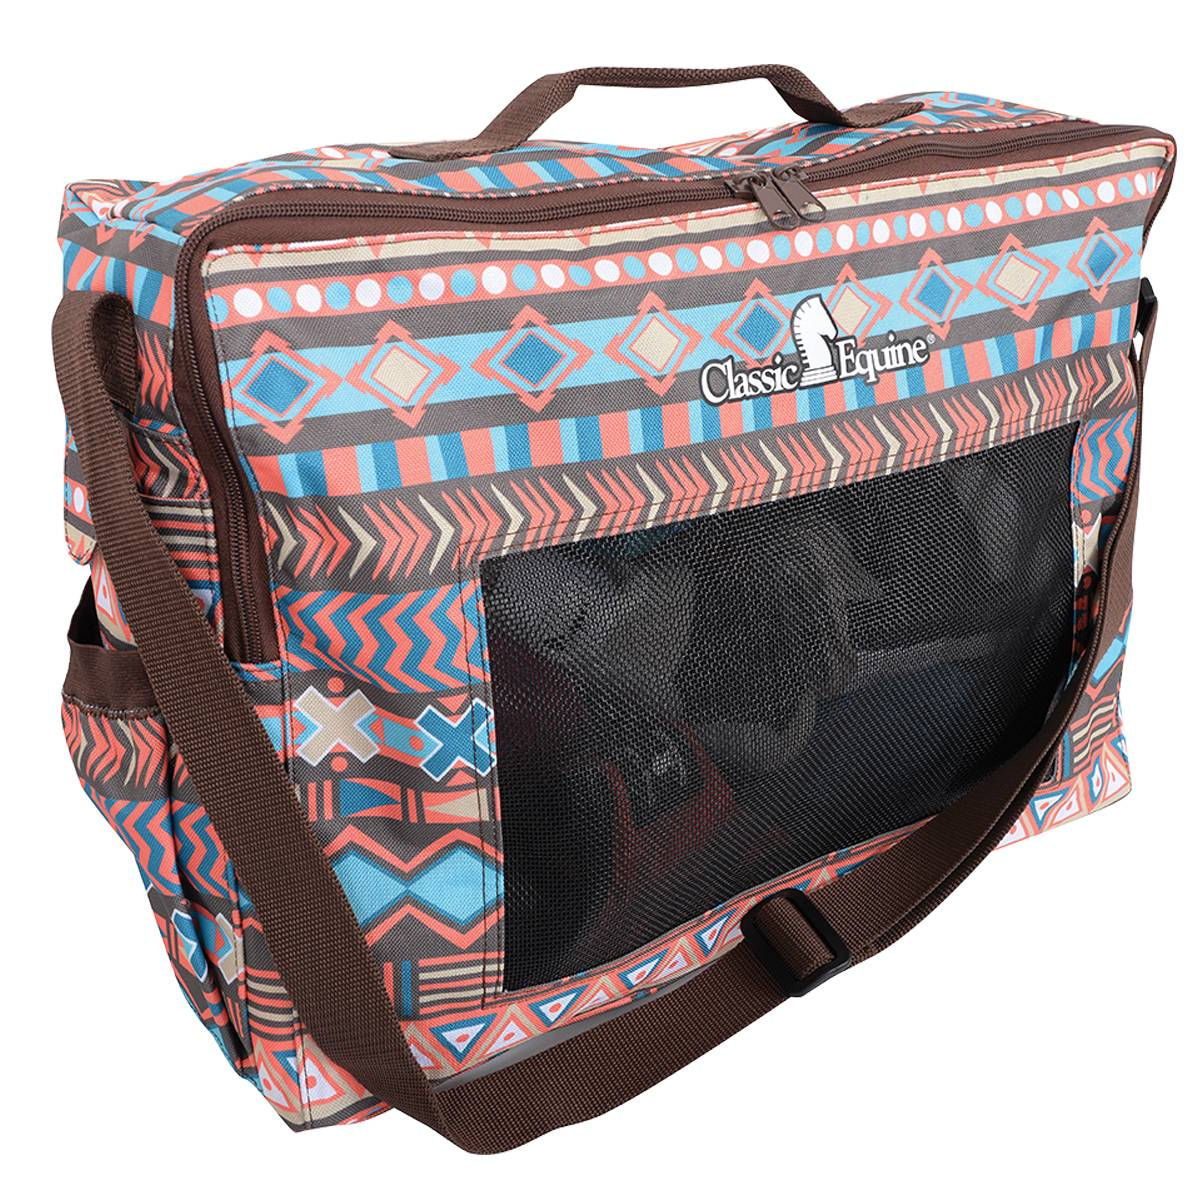 Classic Equine Boot Accessory Tote - Chocolate Tribal